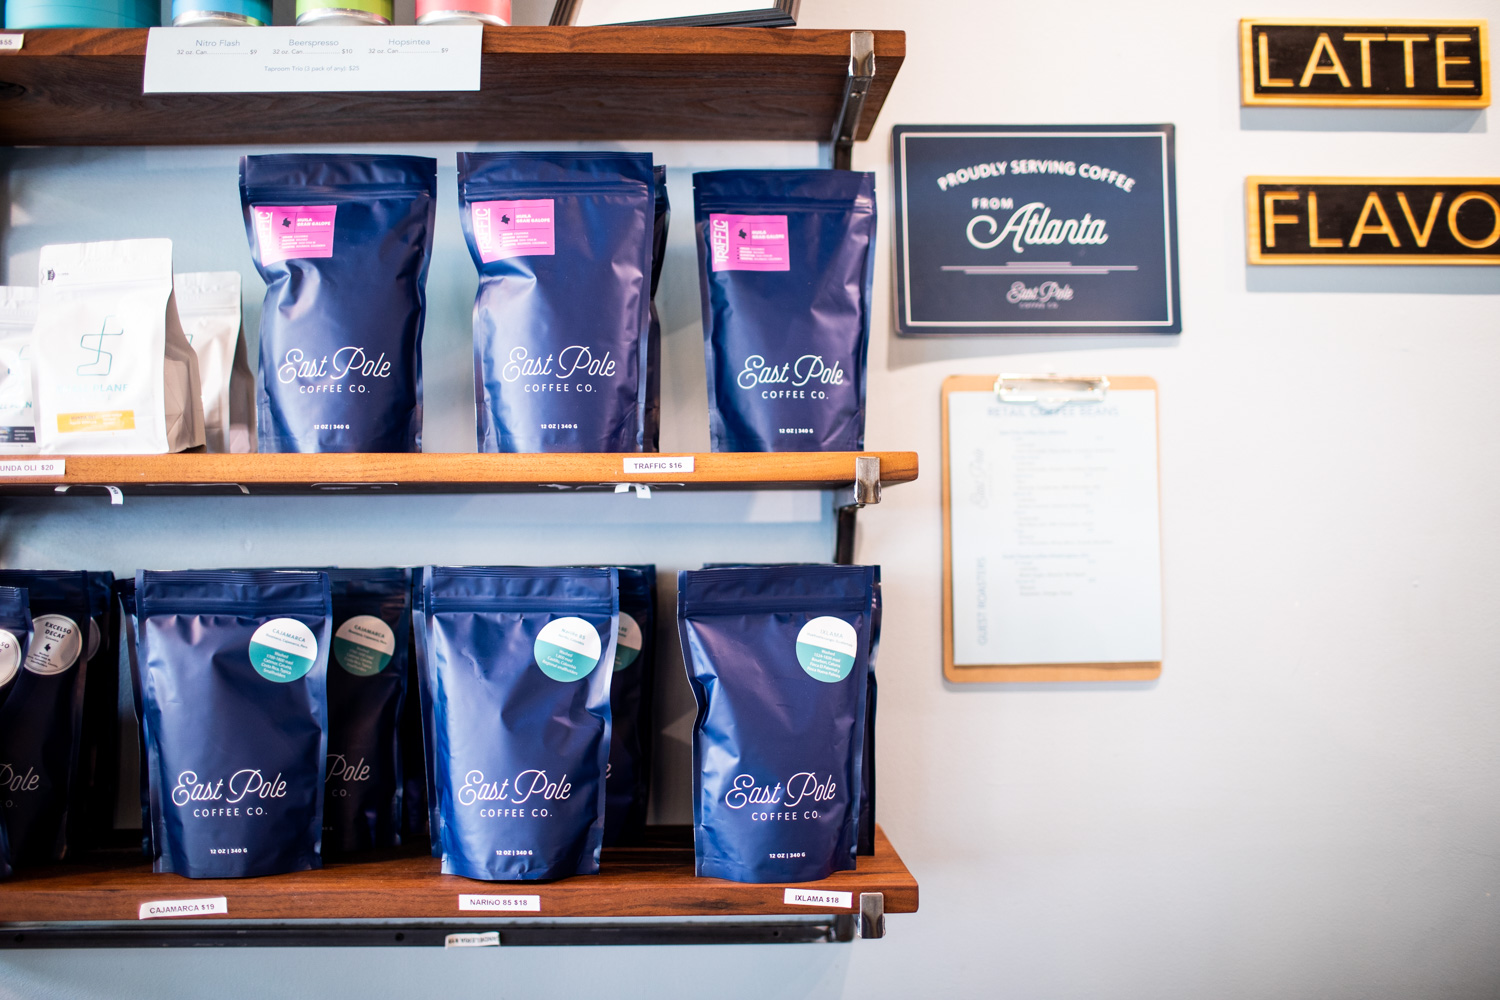 Coffee for sale from East Pole Coffee Co.